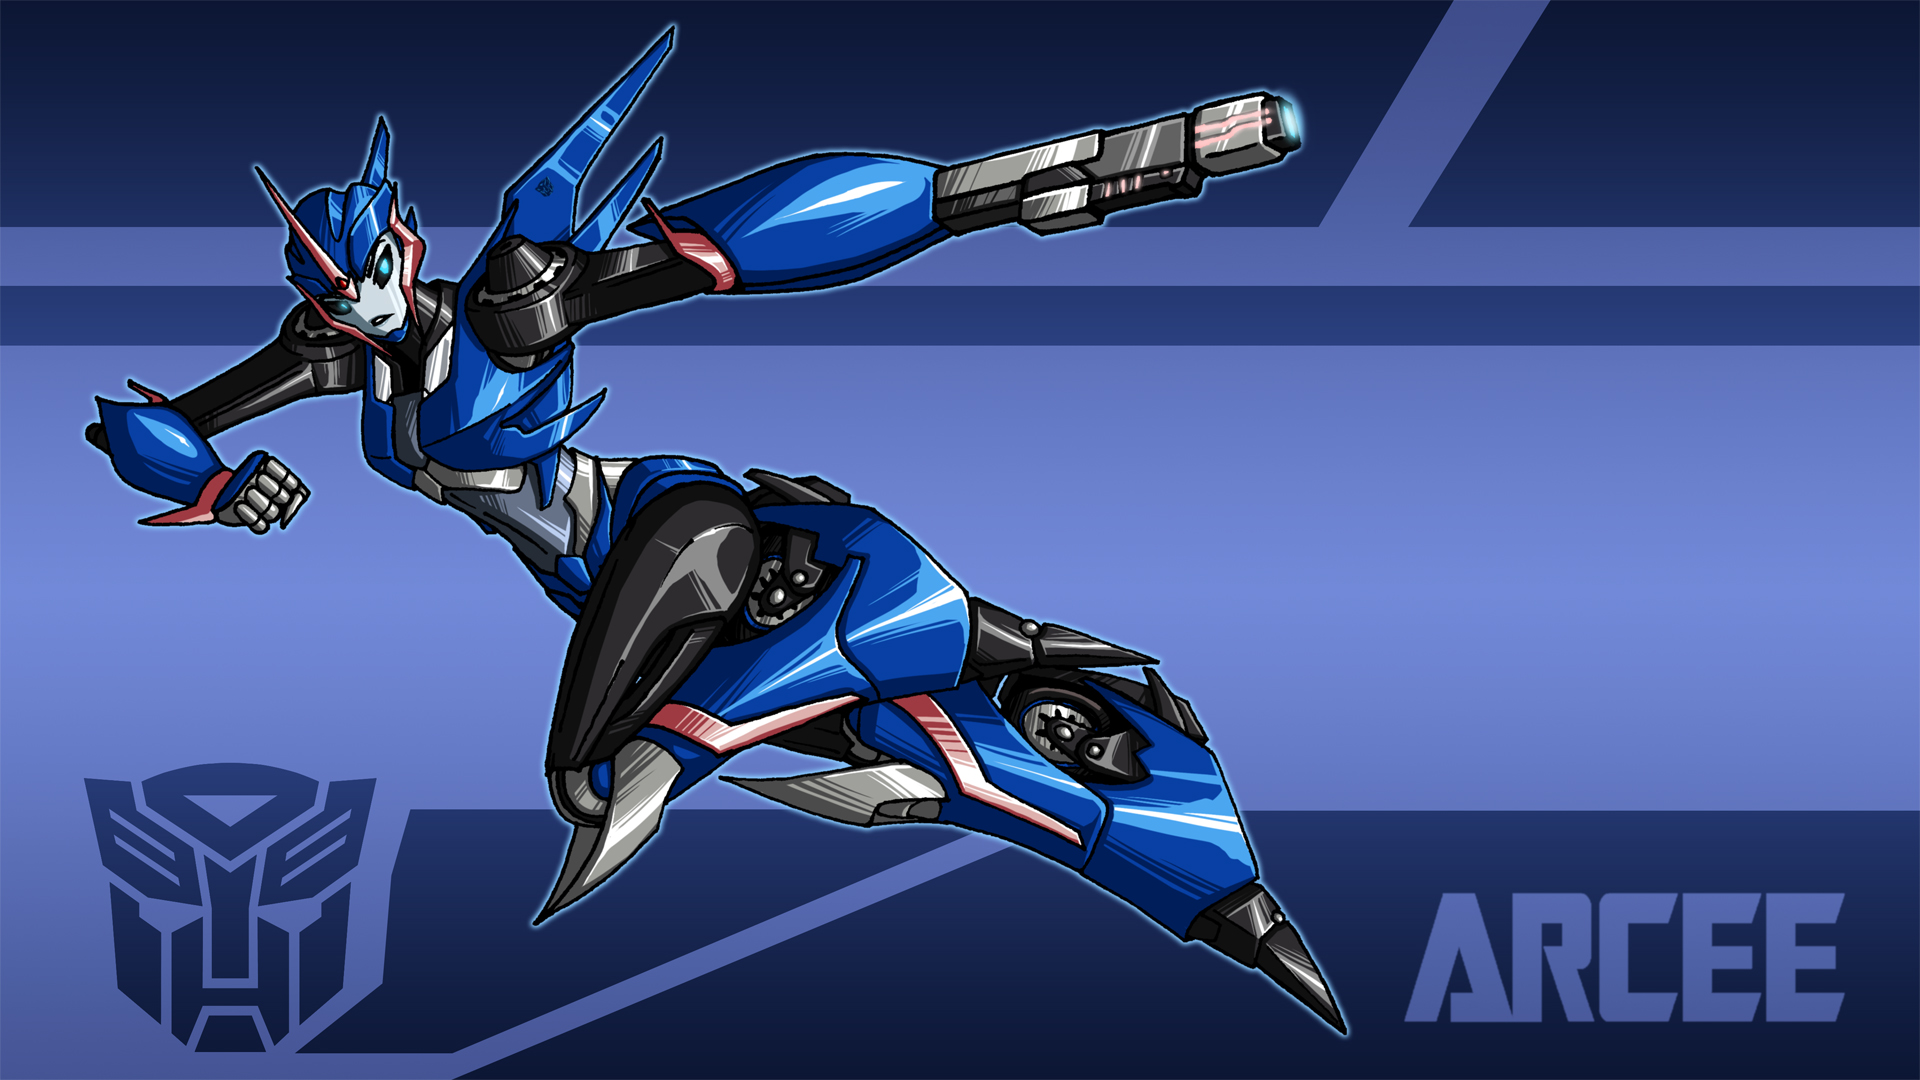 Arcee x Reader on Transformers-x-You - DeviantArt